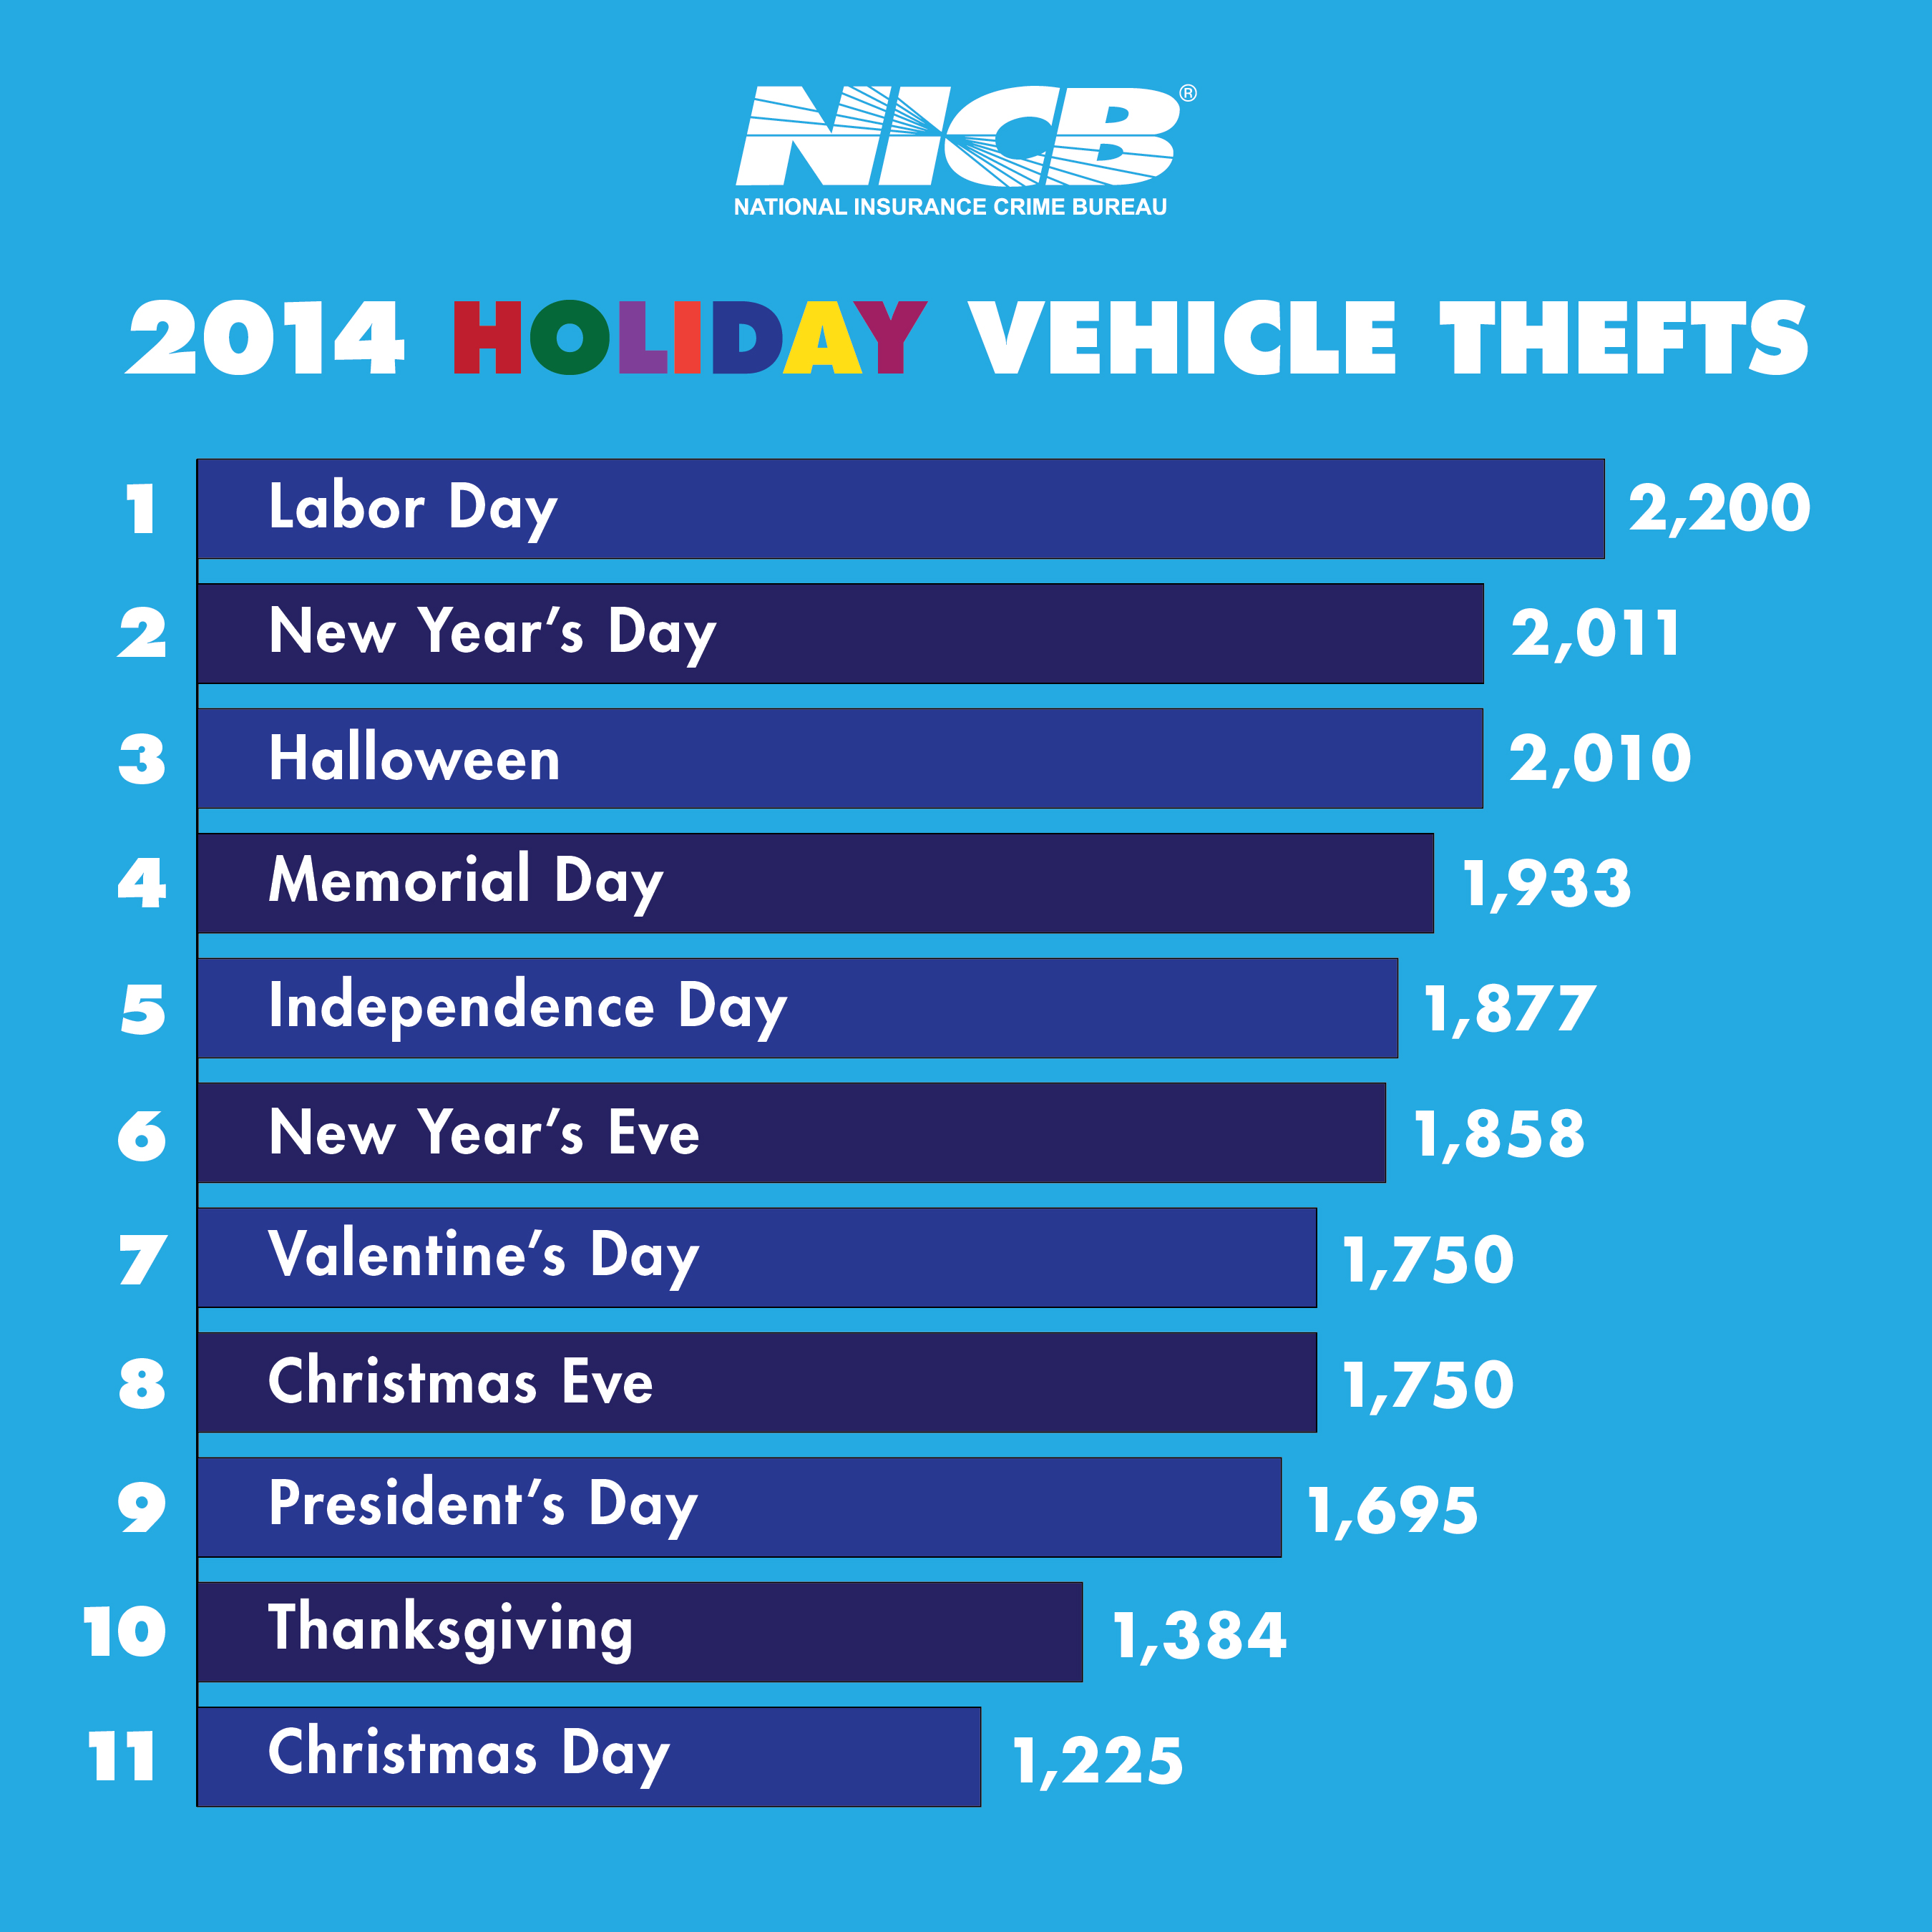 Even on holidays, car thieves are working. On Christmas Day last year, a vehicle was stolen every 71 seconds